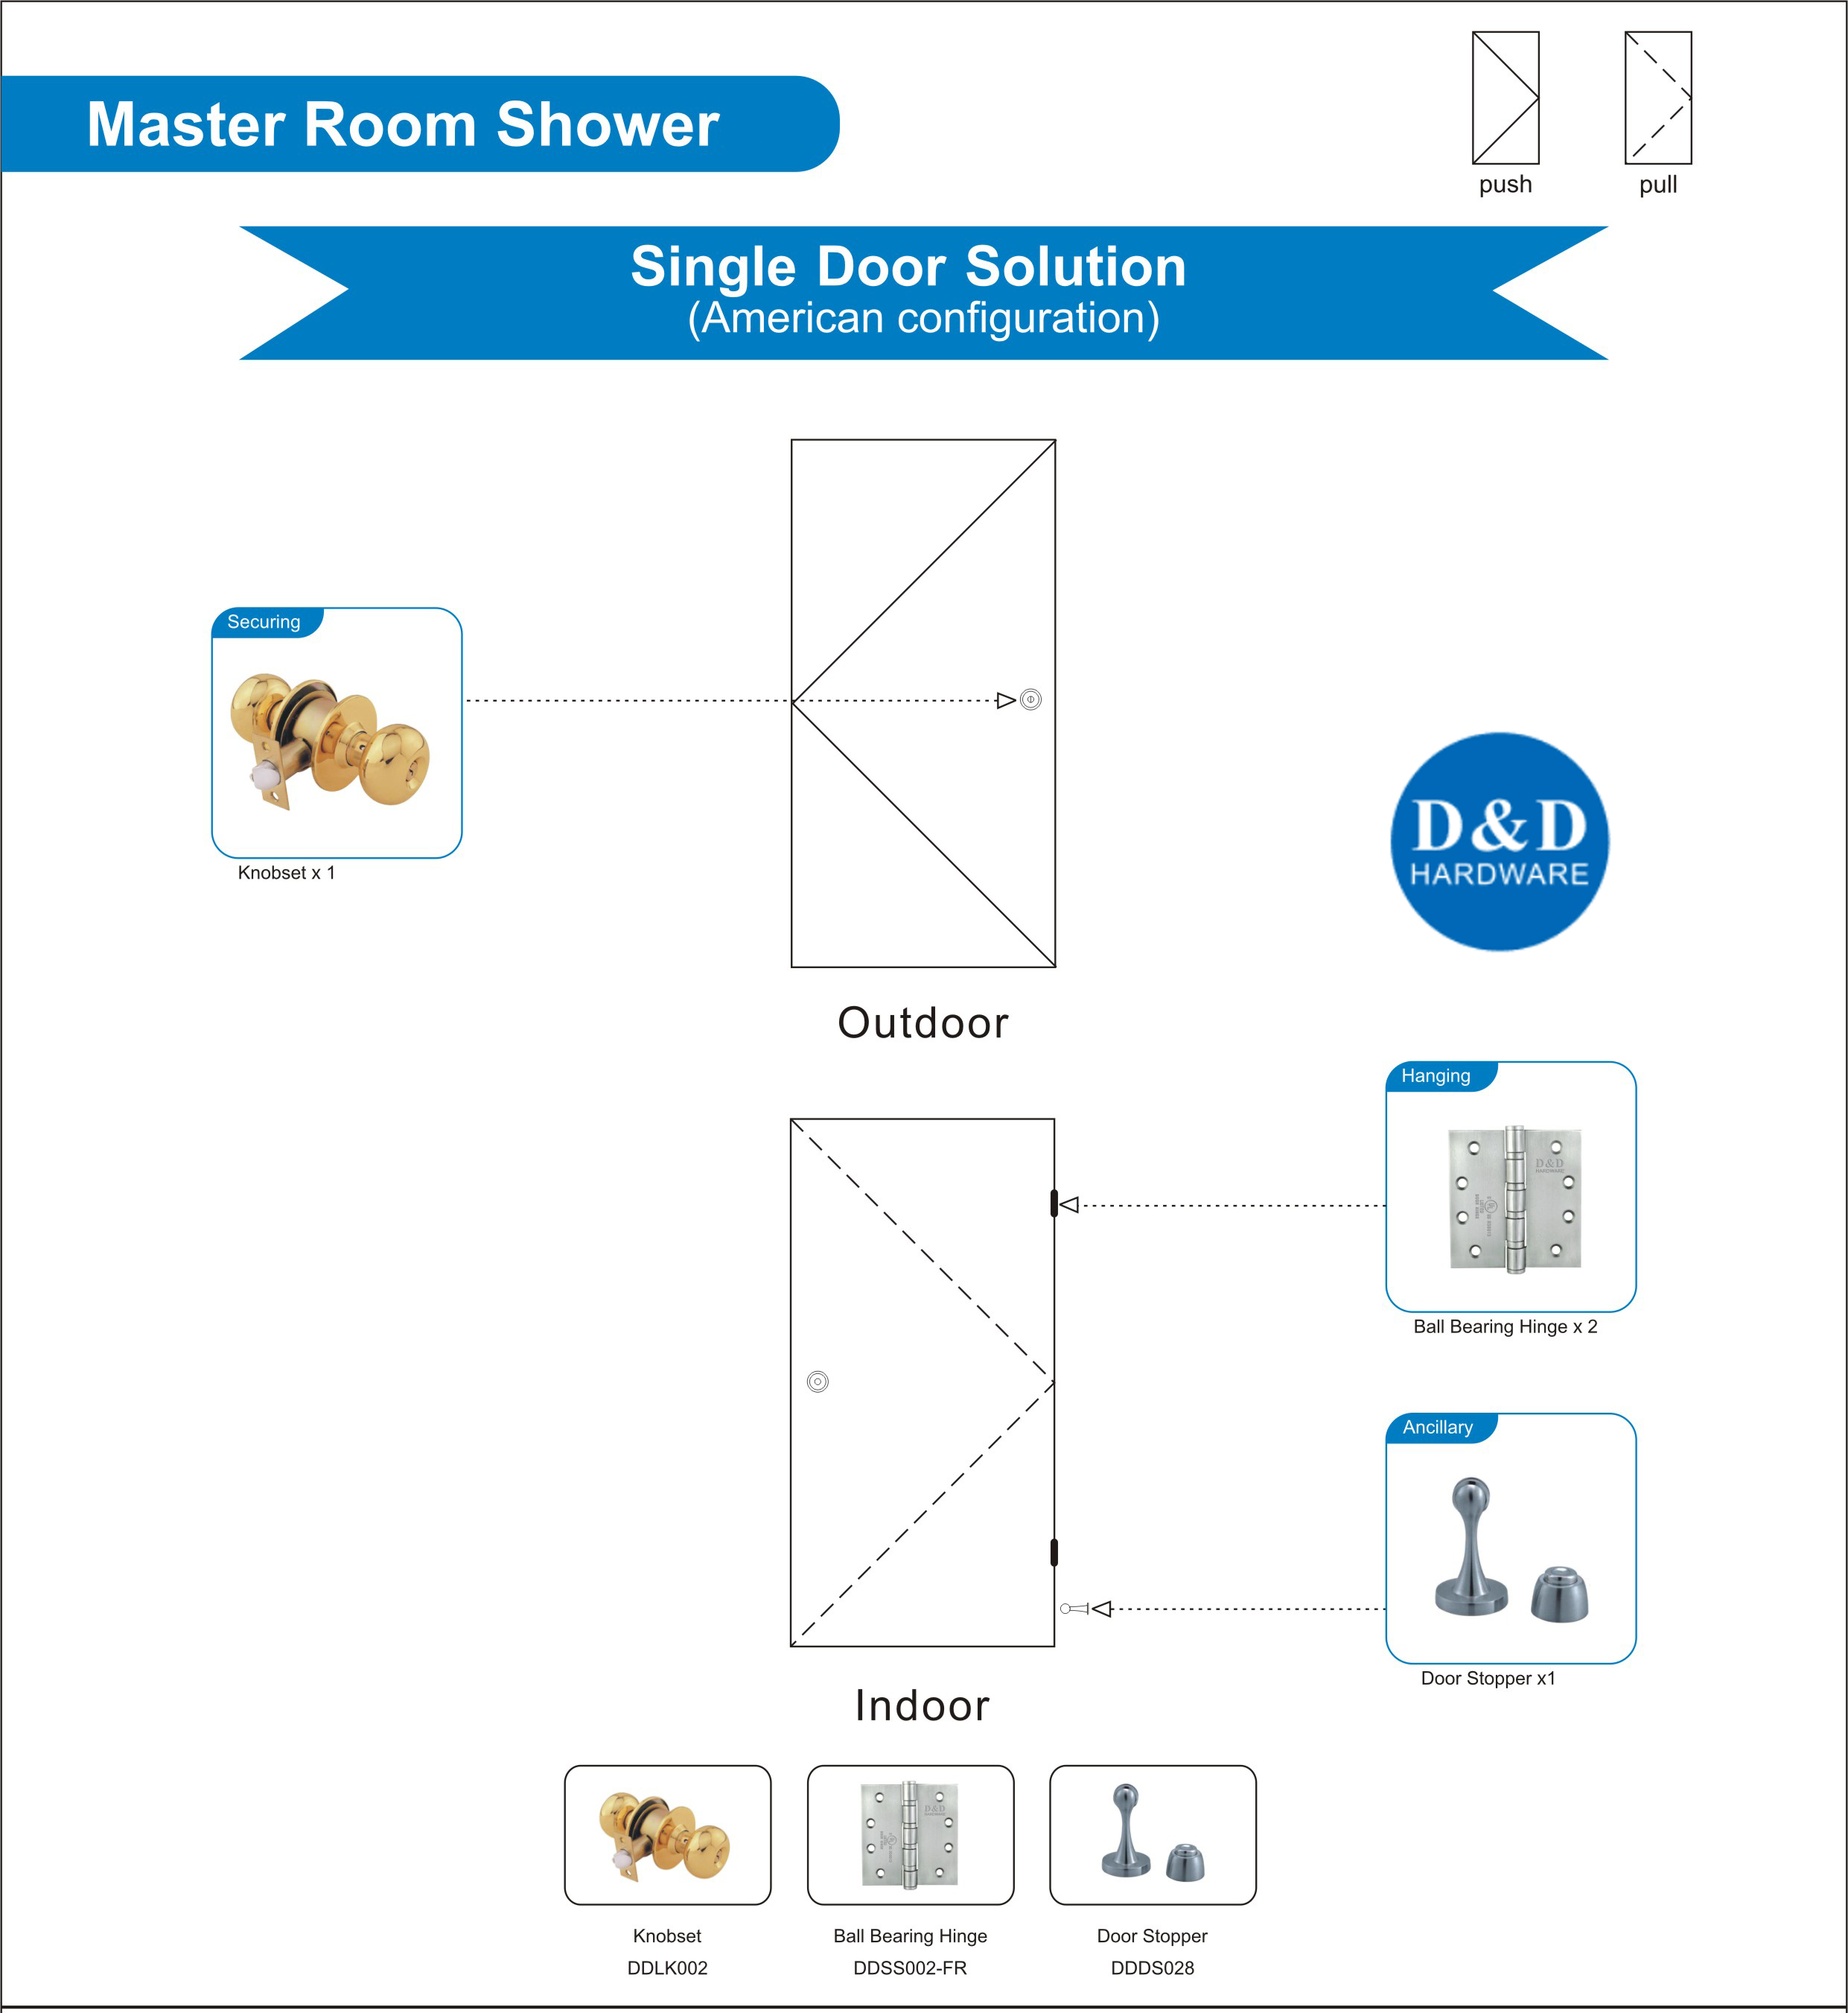 Building Opening Solution for Master Room Shower Single Door